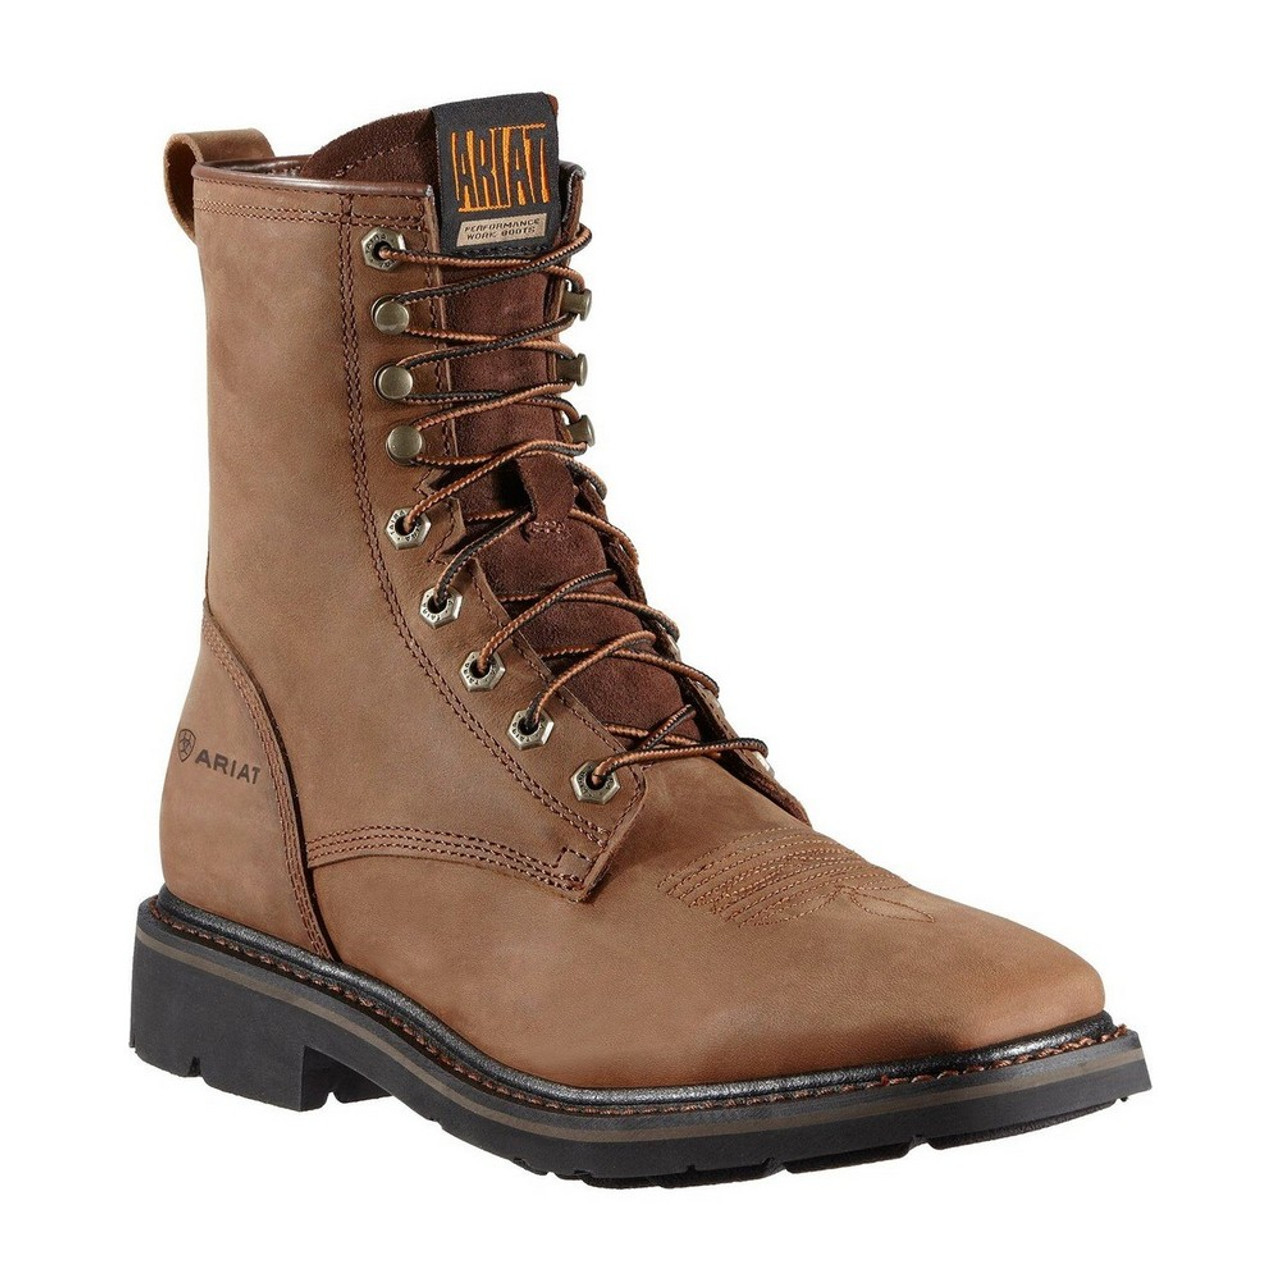 Men's Cascade Square Toe Lace Up Work Boots